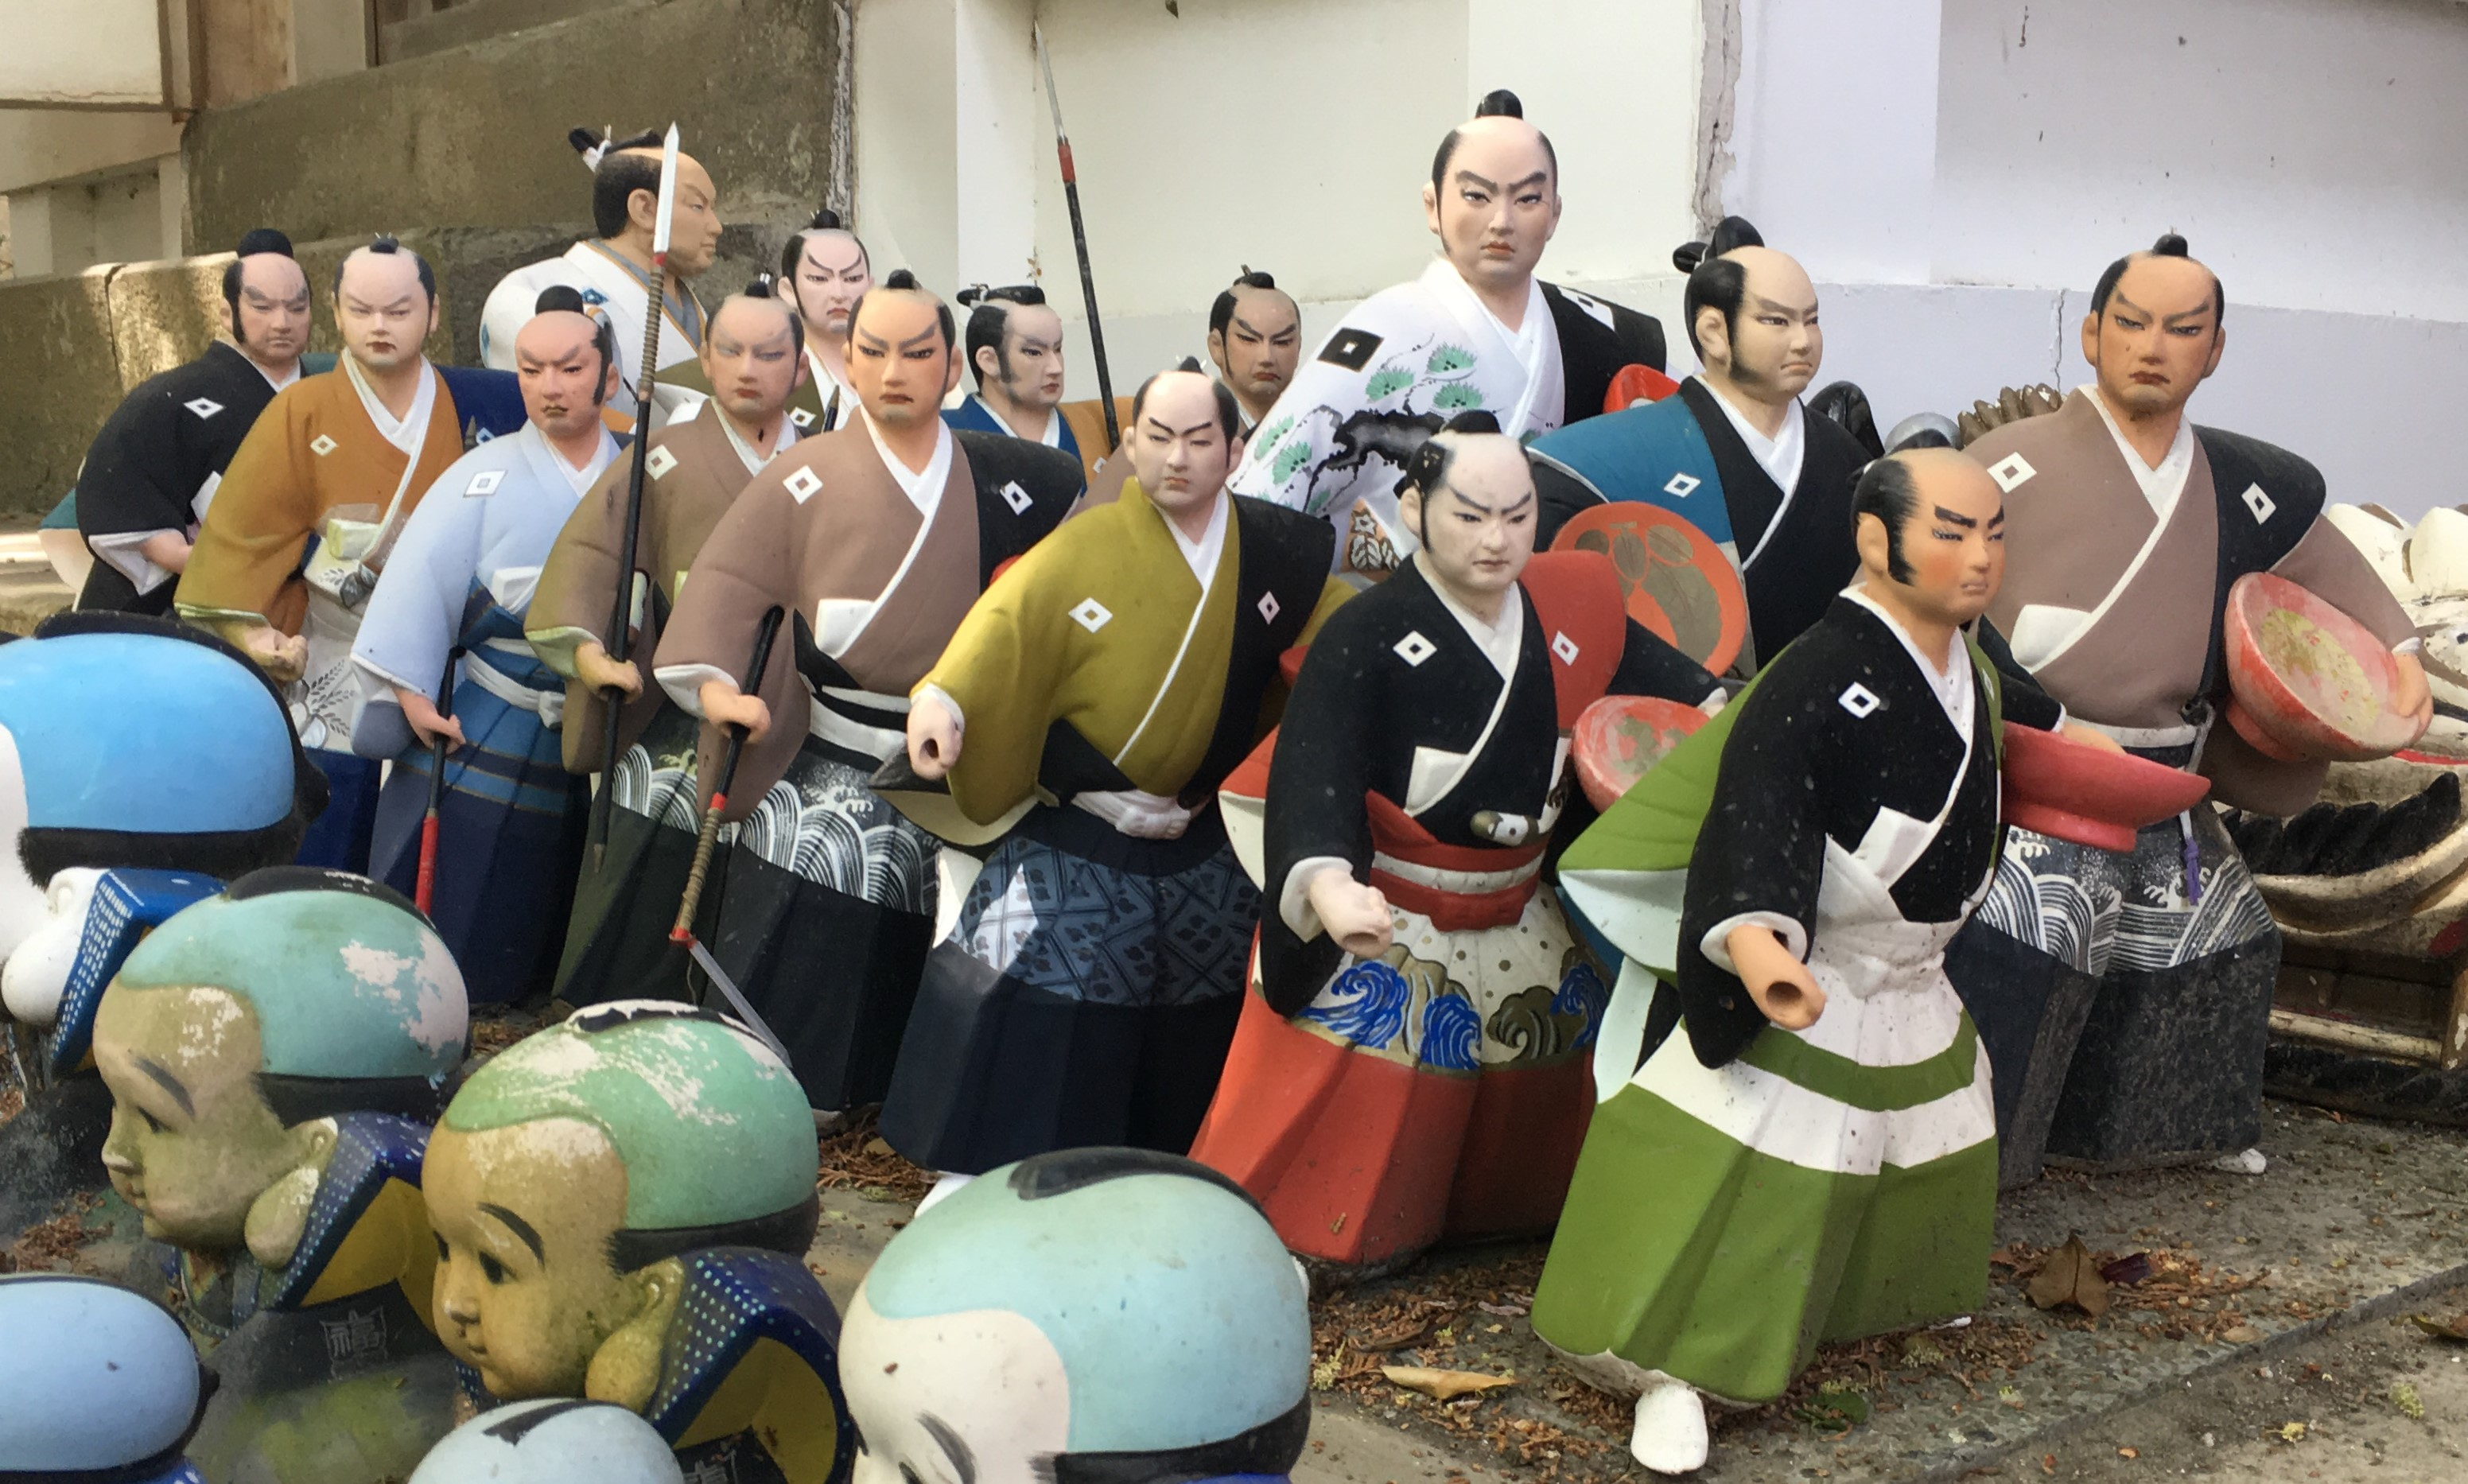 two rows of old hakata dolls of Kuroda Bushi on the ground of Awashima Shrine